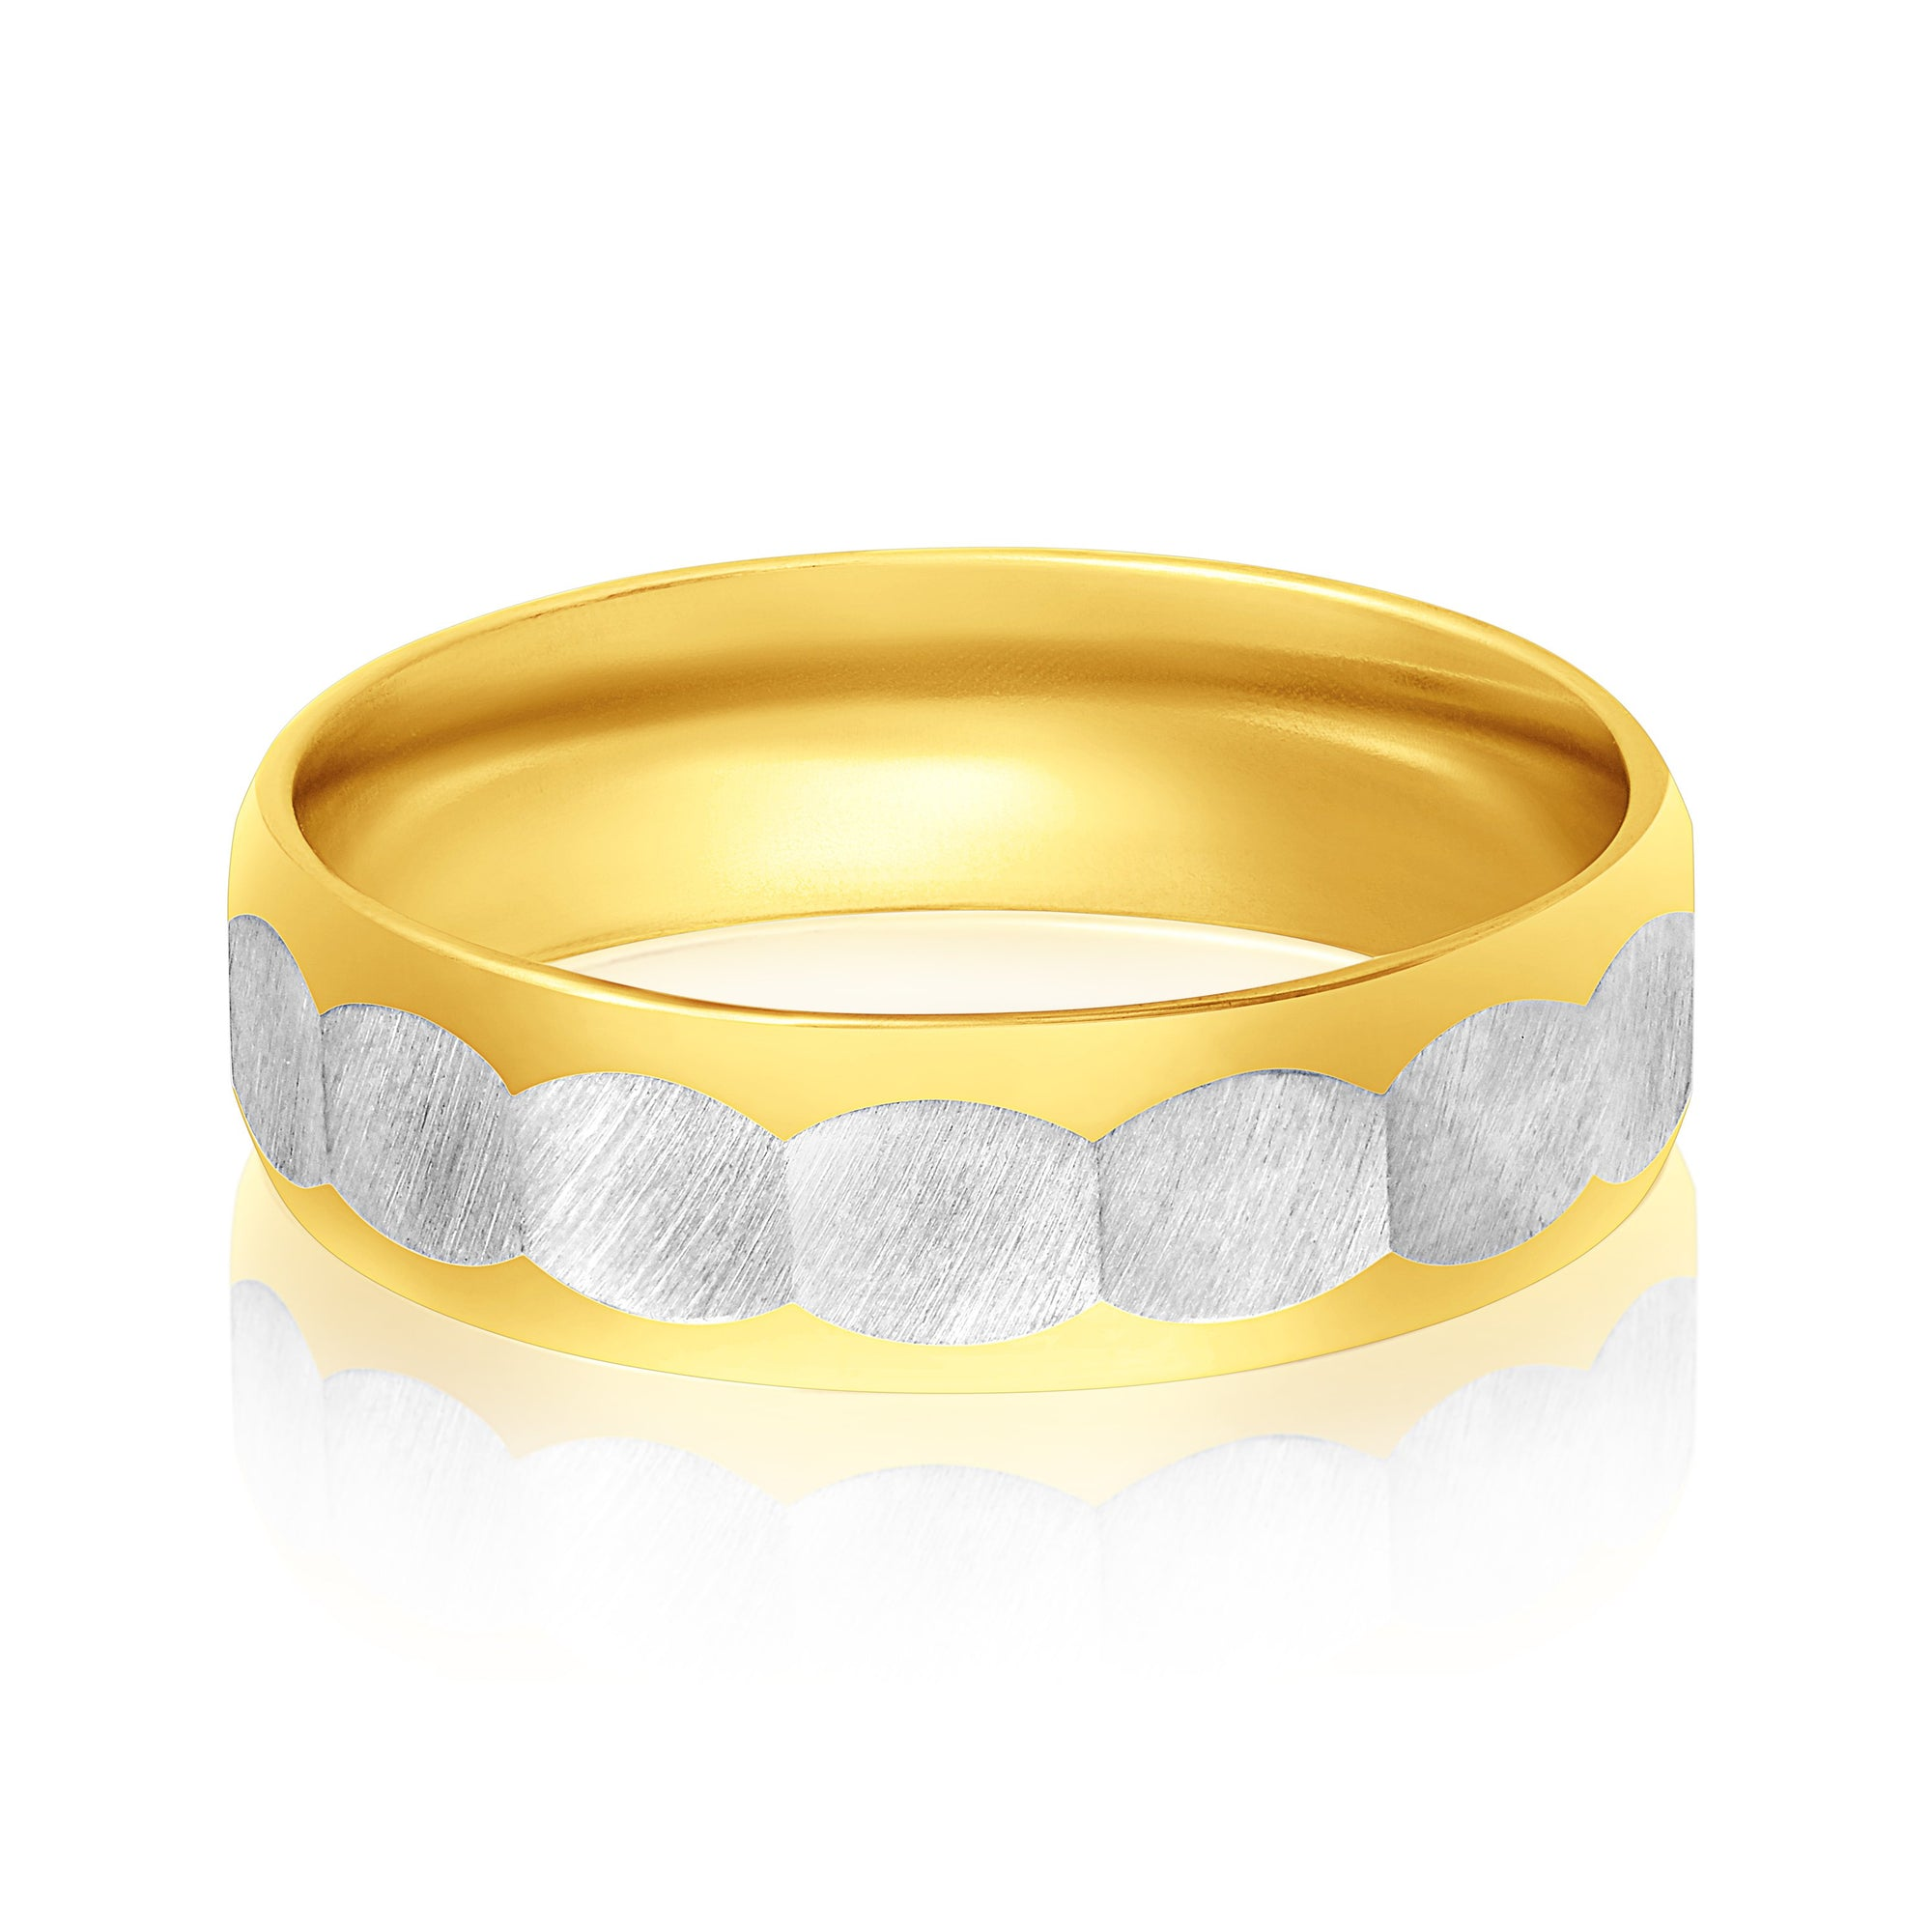 Asmitta Jewellery Two Finger Ring For Men -R153